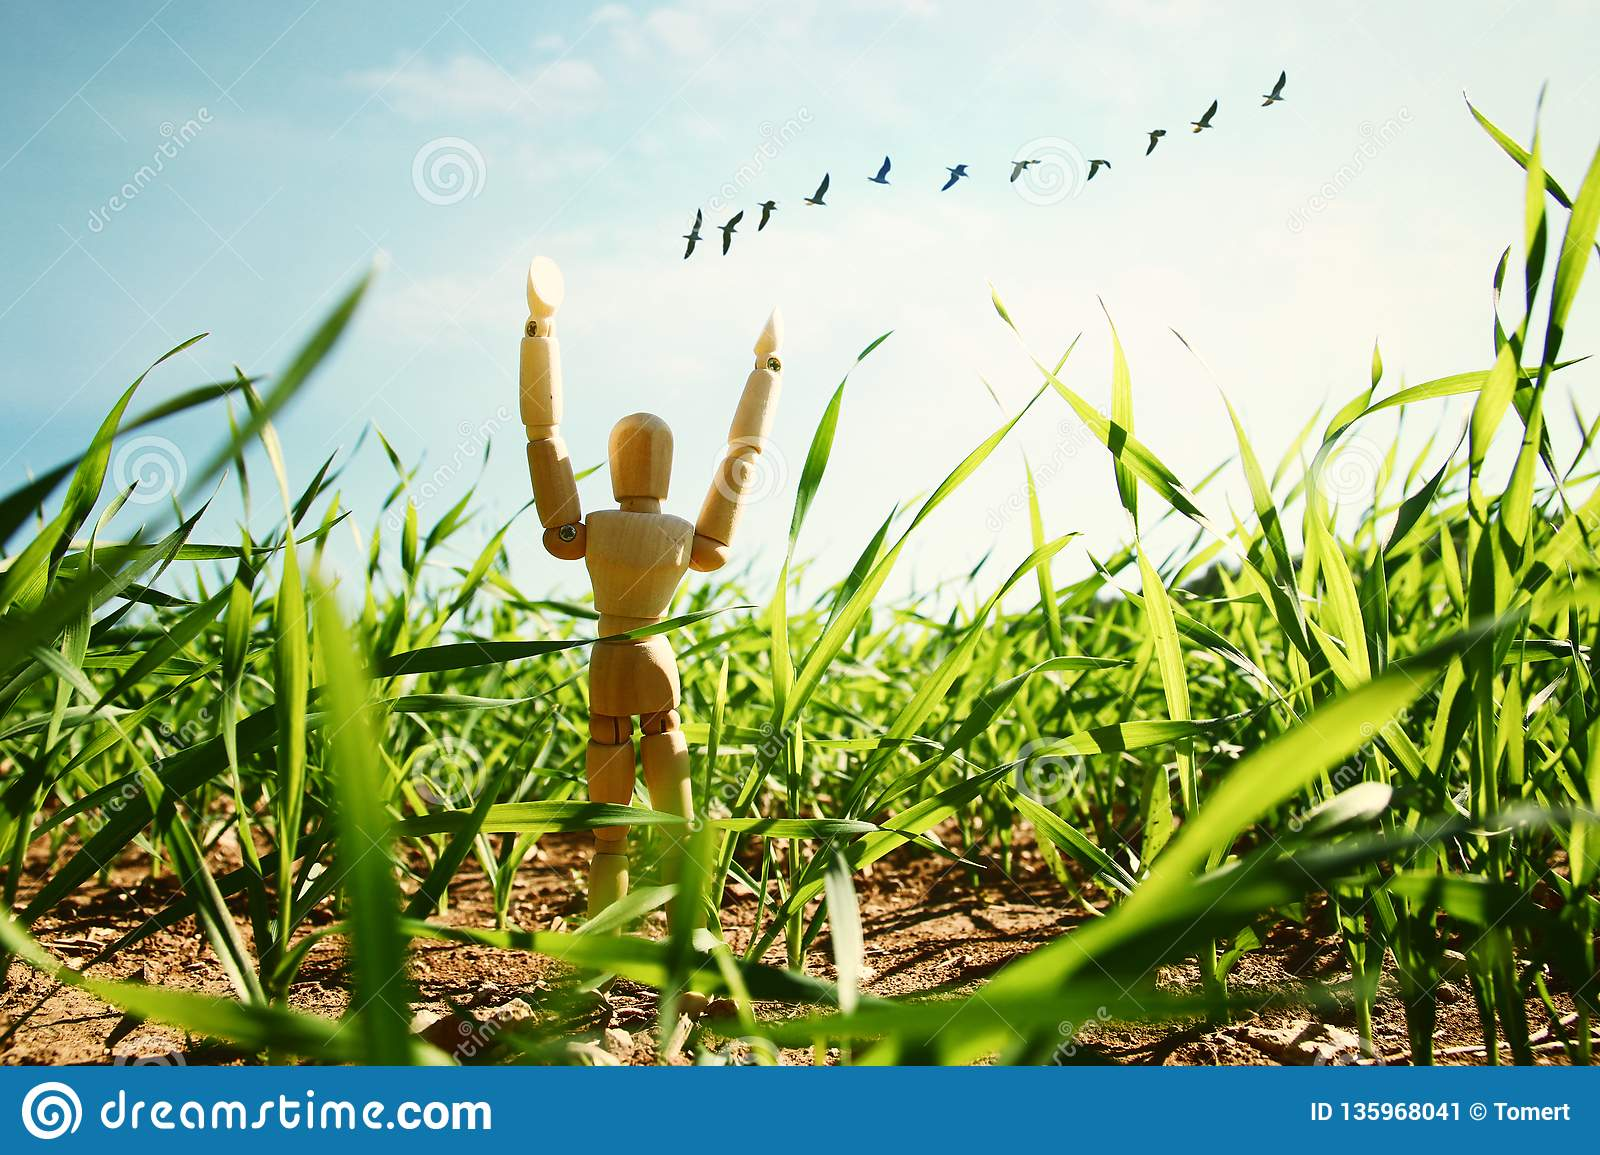 photo of wooden dummy standing in field looking forward at flying birds. think big and dream concept.